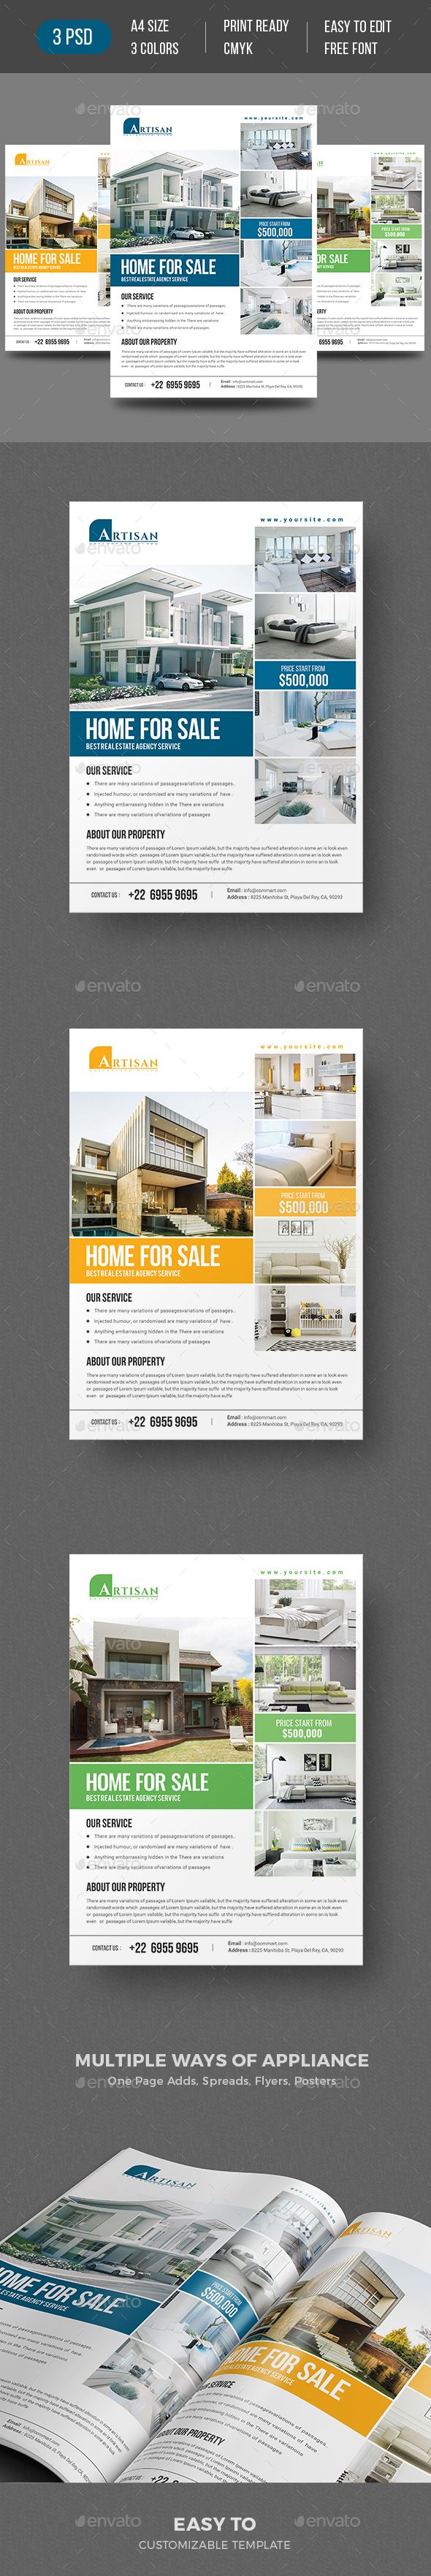 images about best flyer templates restaurant real estate flyer